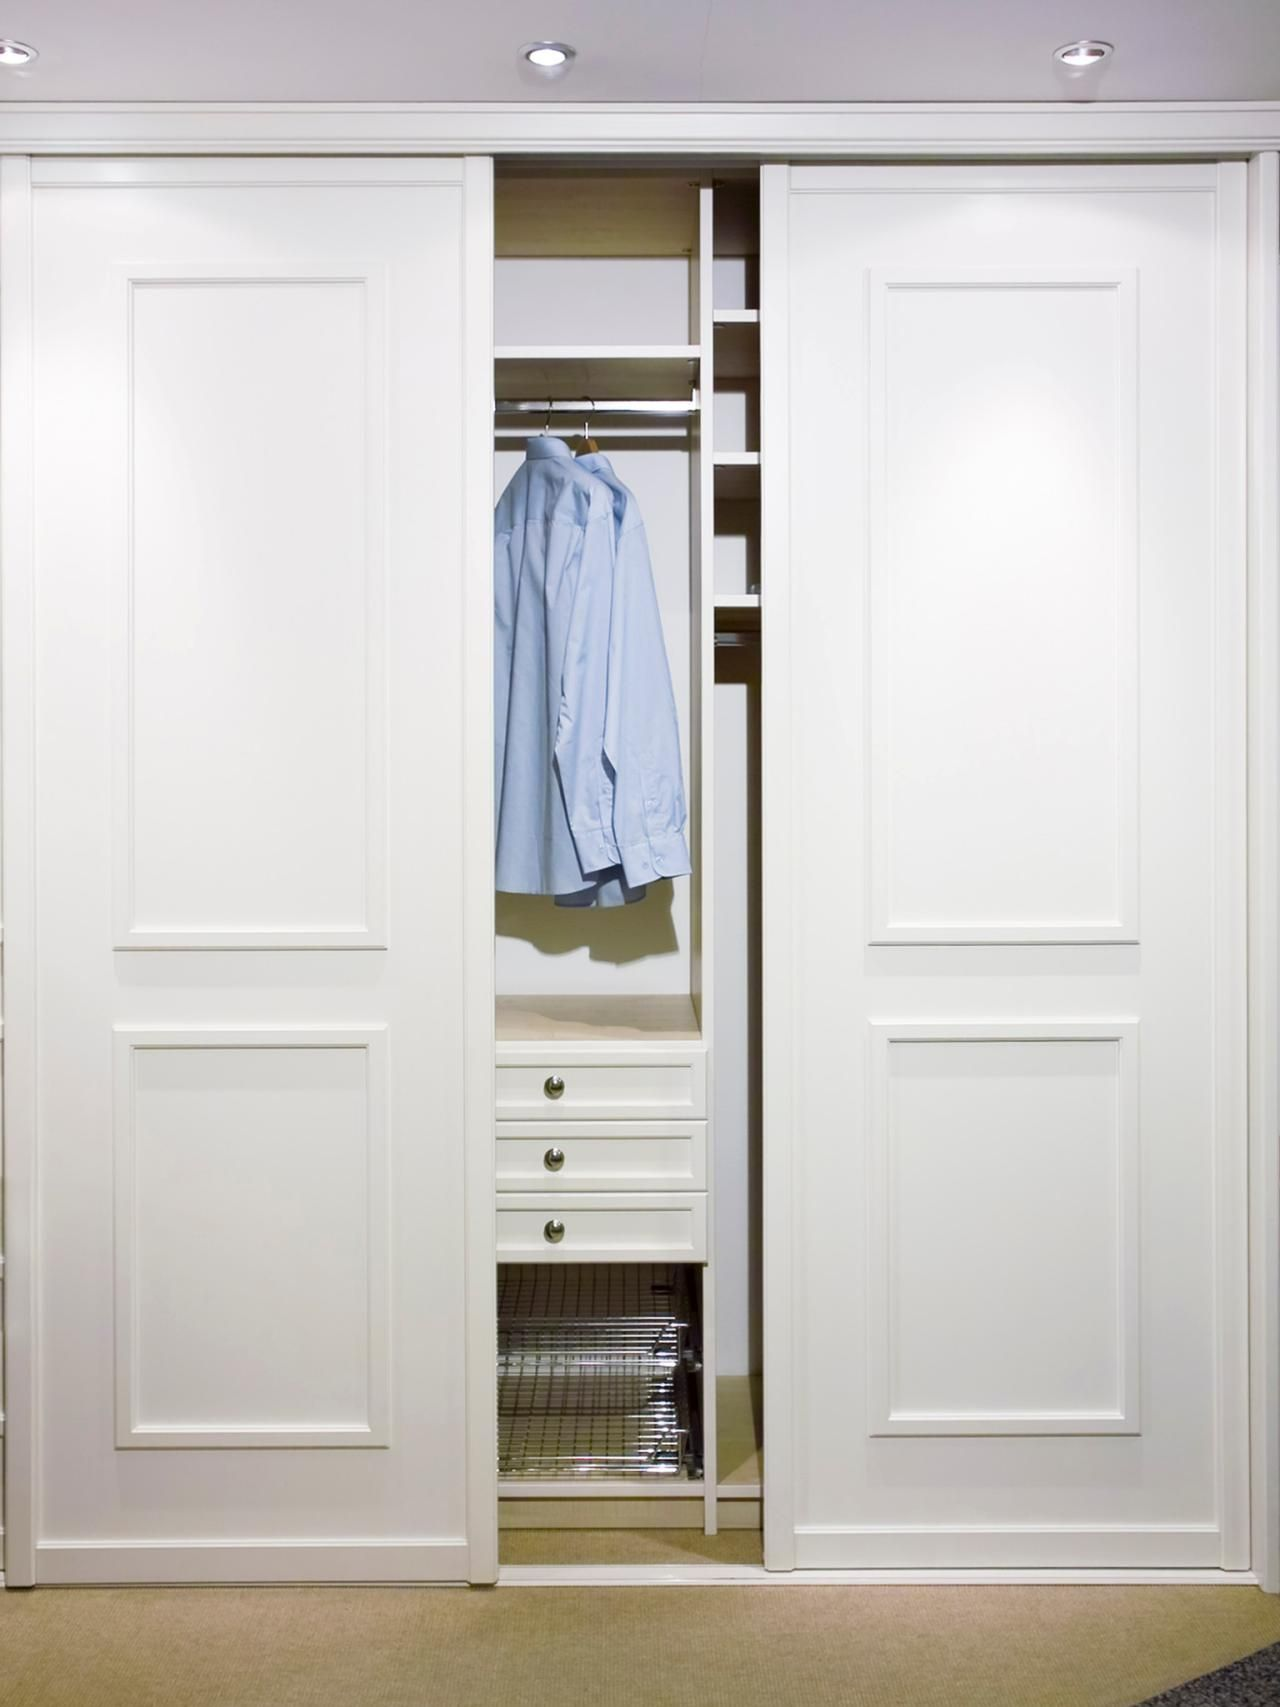 Delicieux HGTV: Expert Tips On Sliding Closet Door Designs Plus Inspiring Pictures,  Ideas And Options For Sliding Closet Doors.